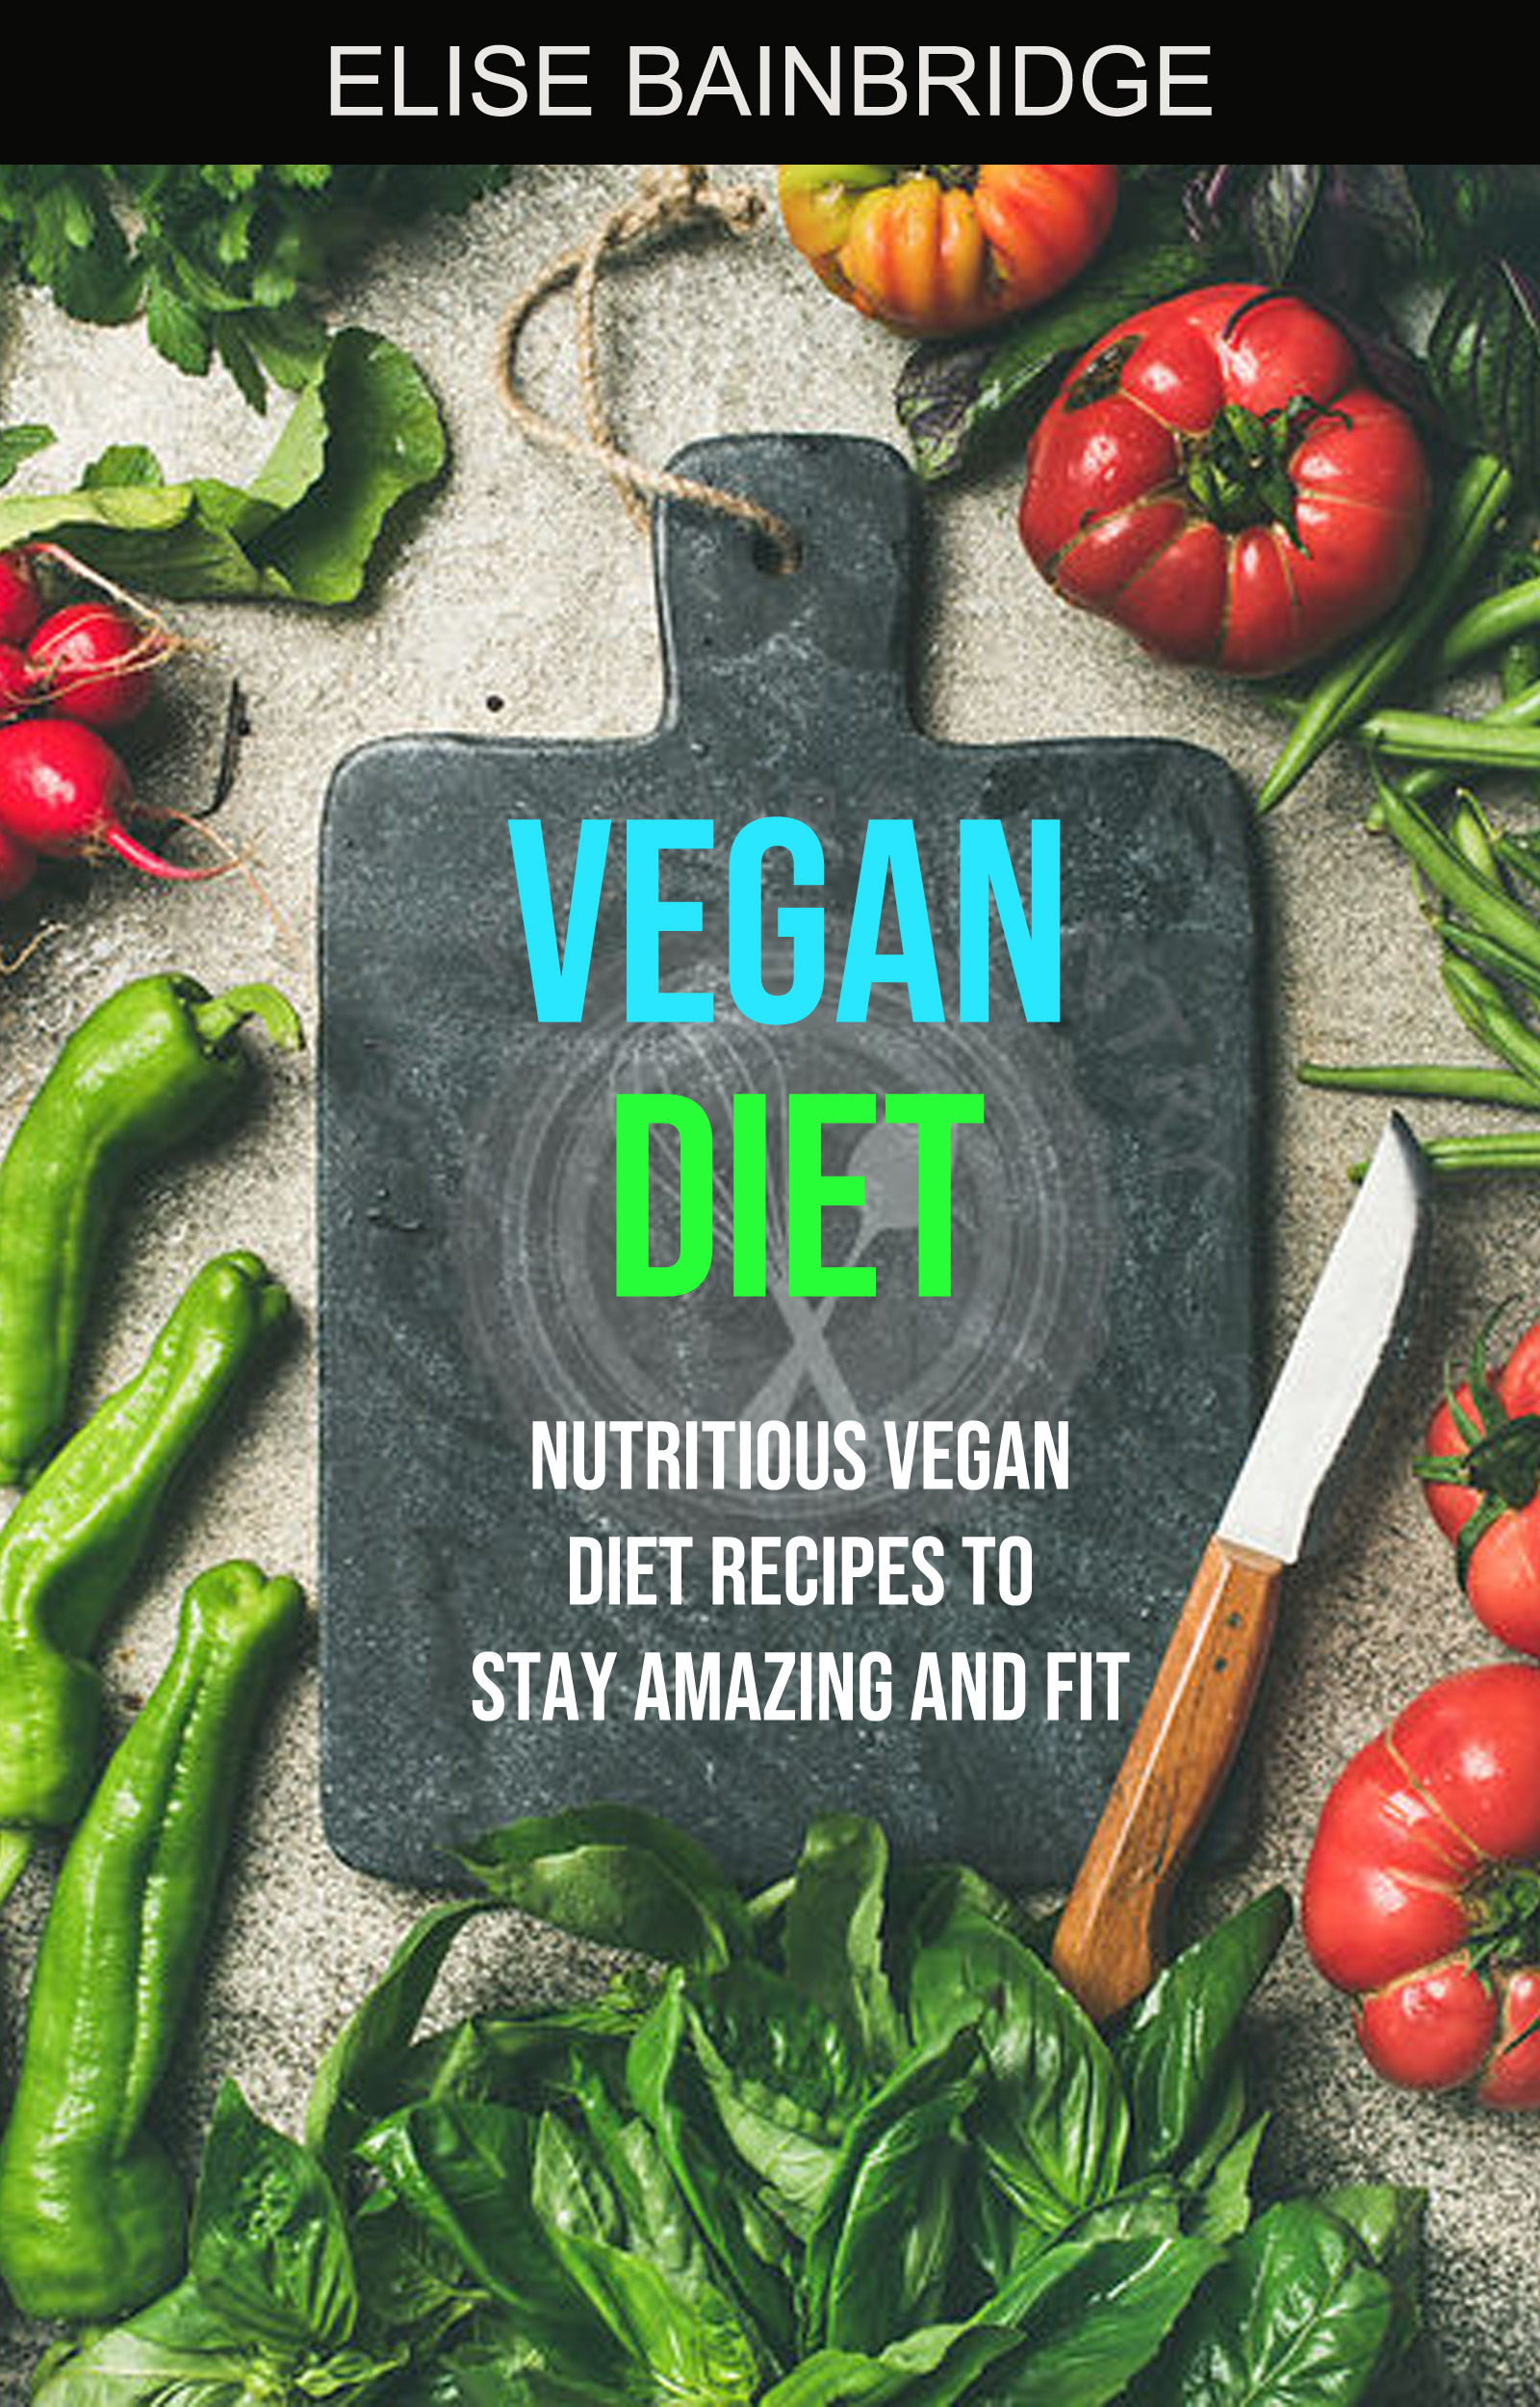 Vegan diet: nutritious vegan diet recipes to stay amazing and fit